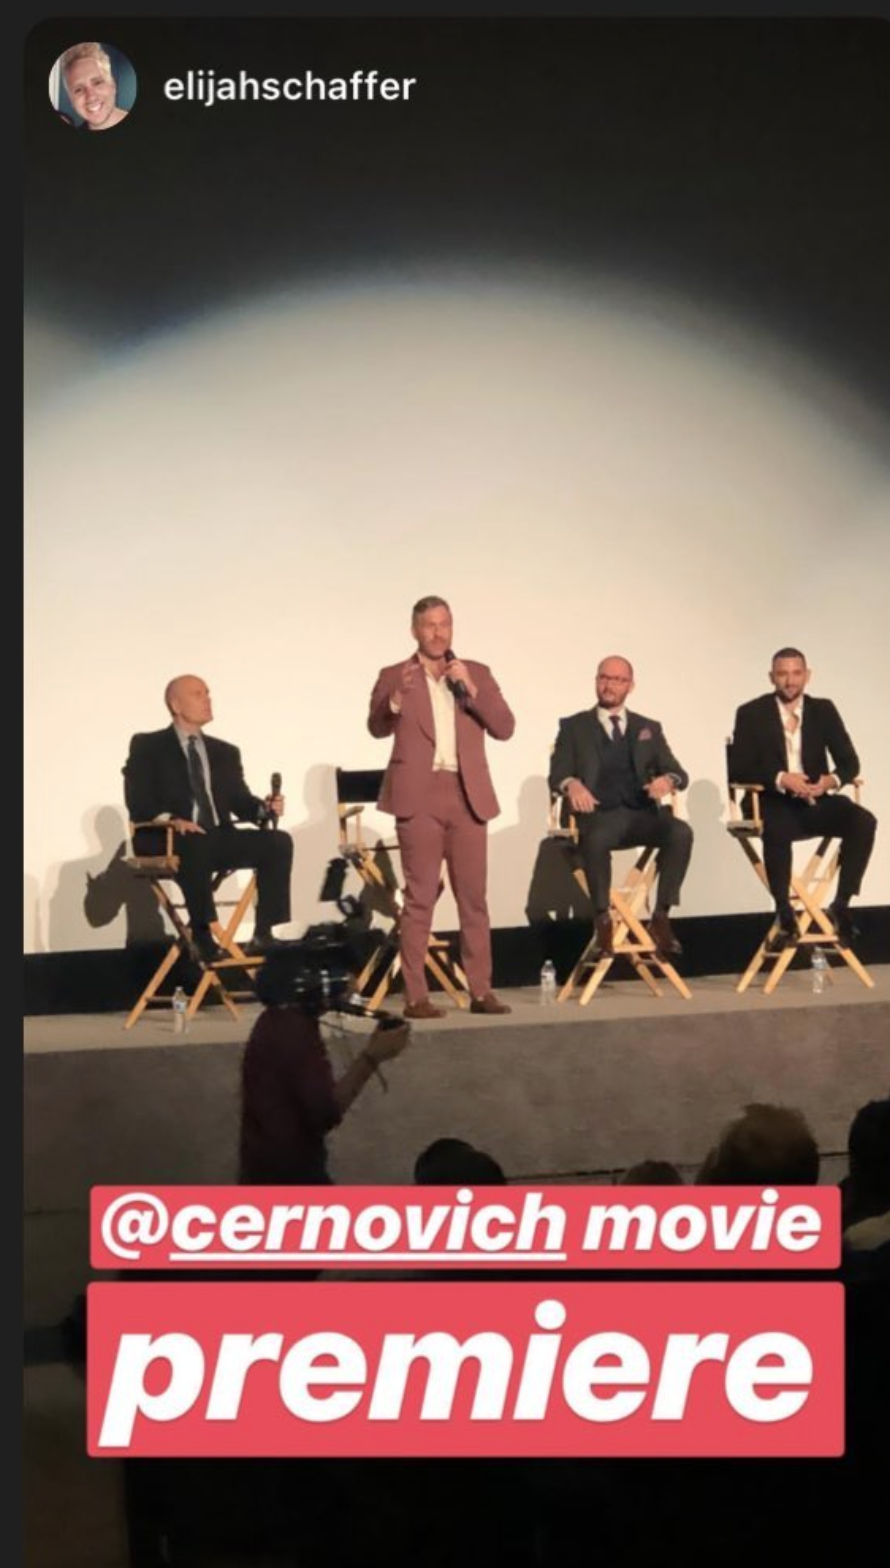 hoaxed premiere movie screening mike cernovich